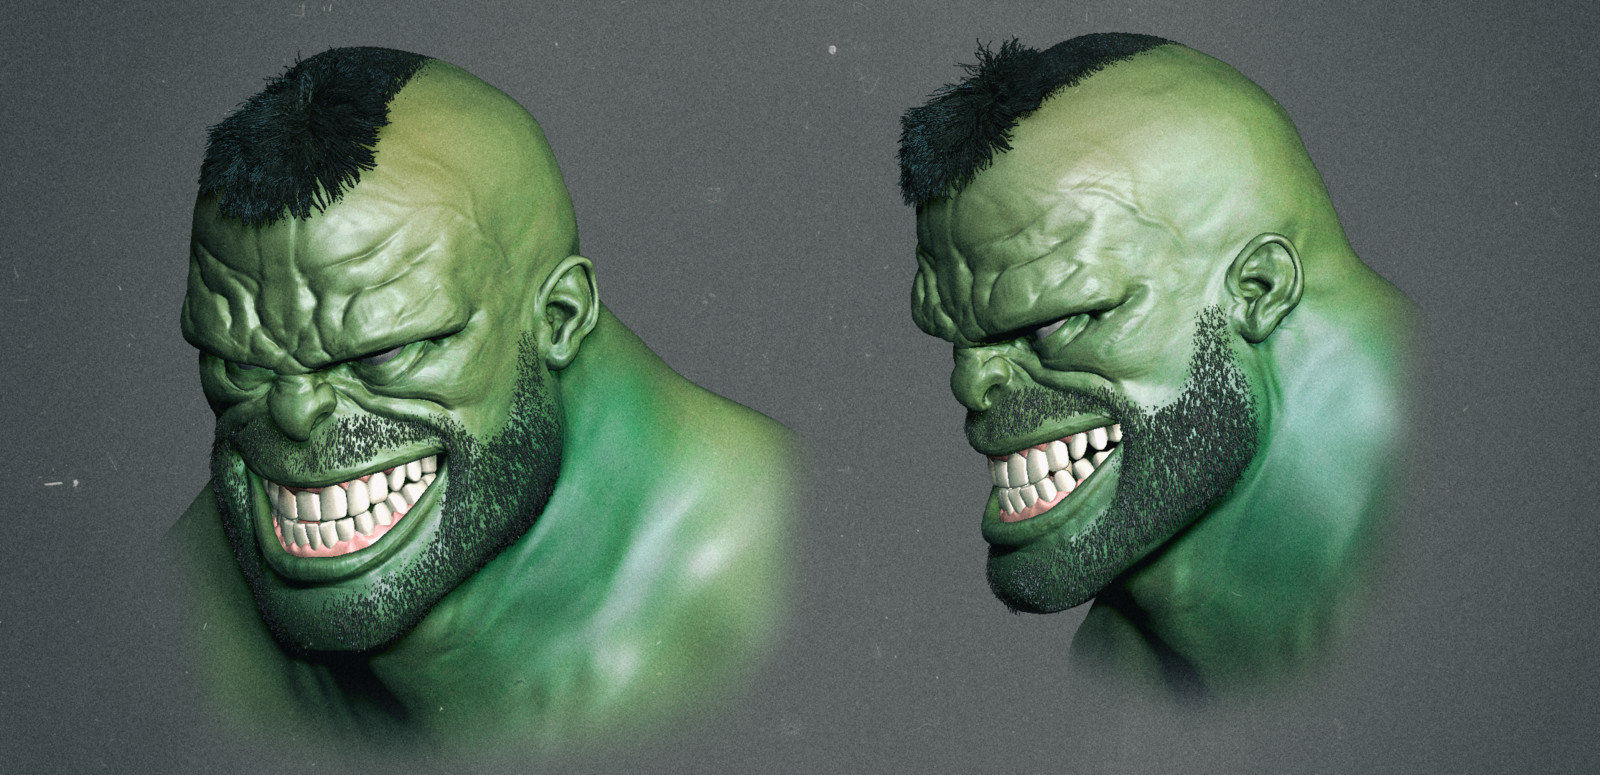 Hulk 3D speed sculpt inspired by a concept by Ben Oliver